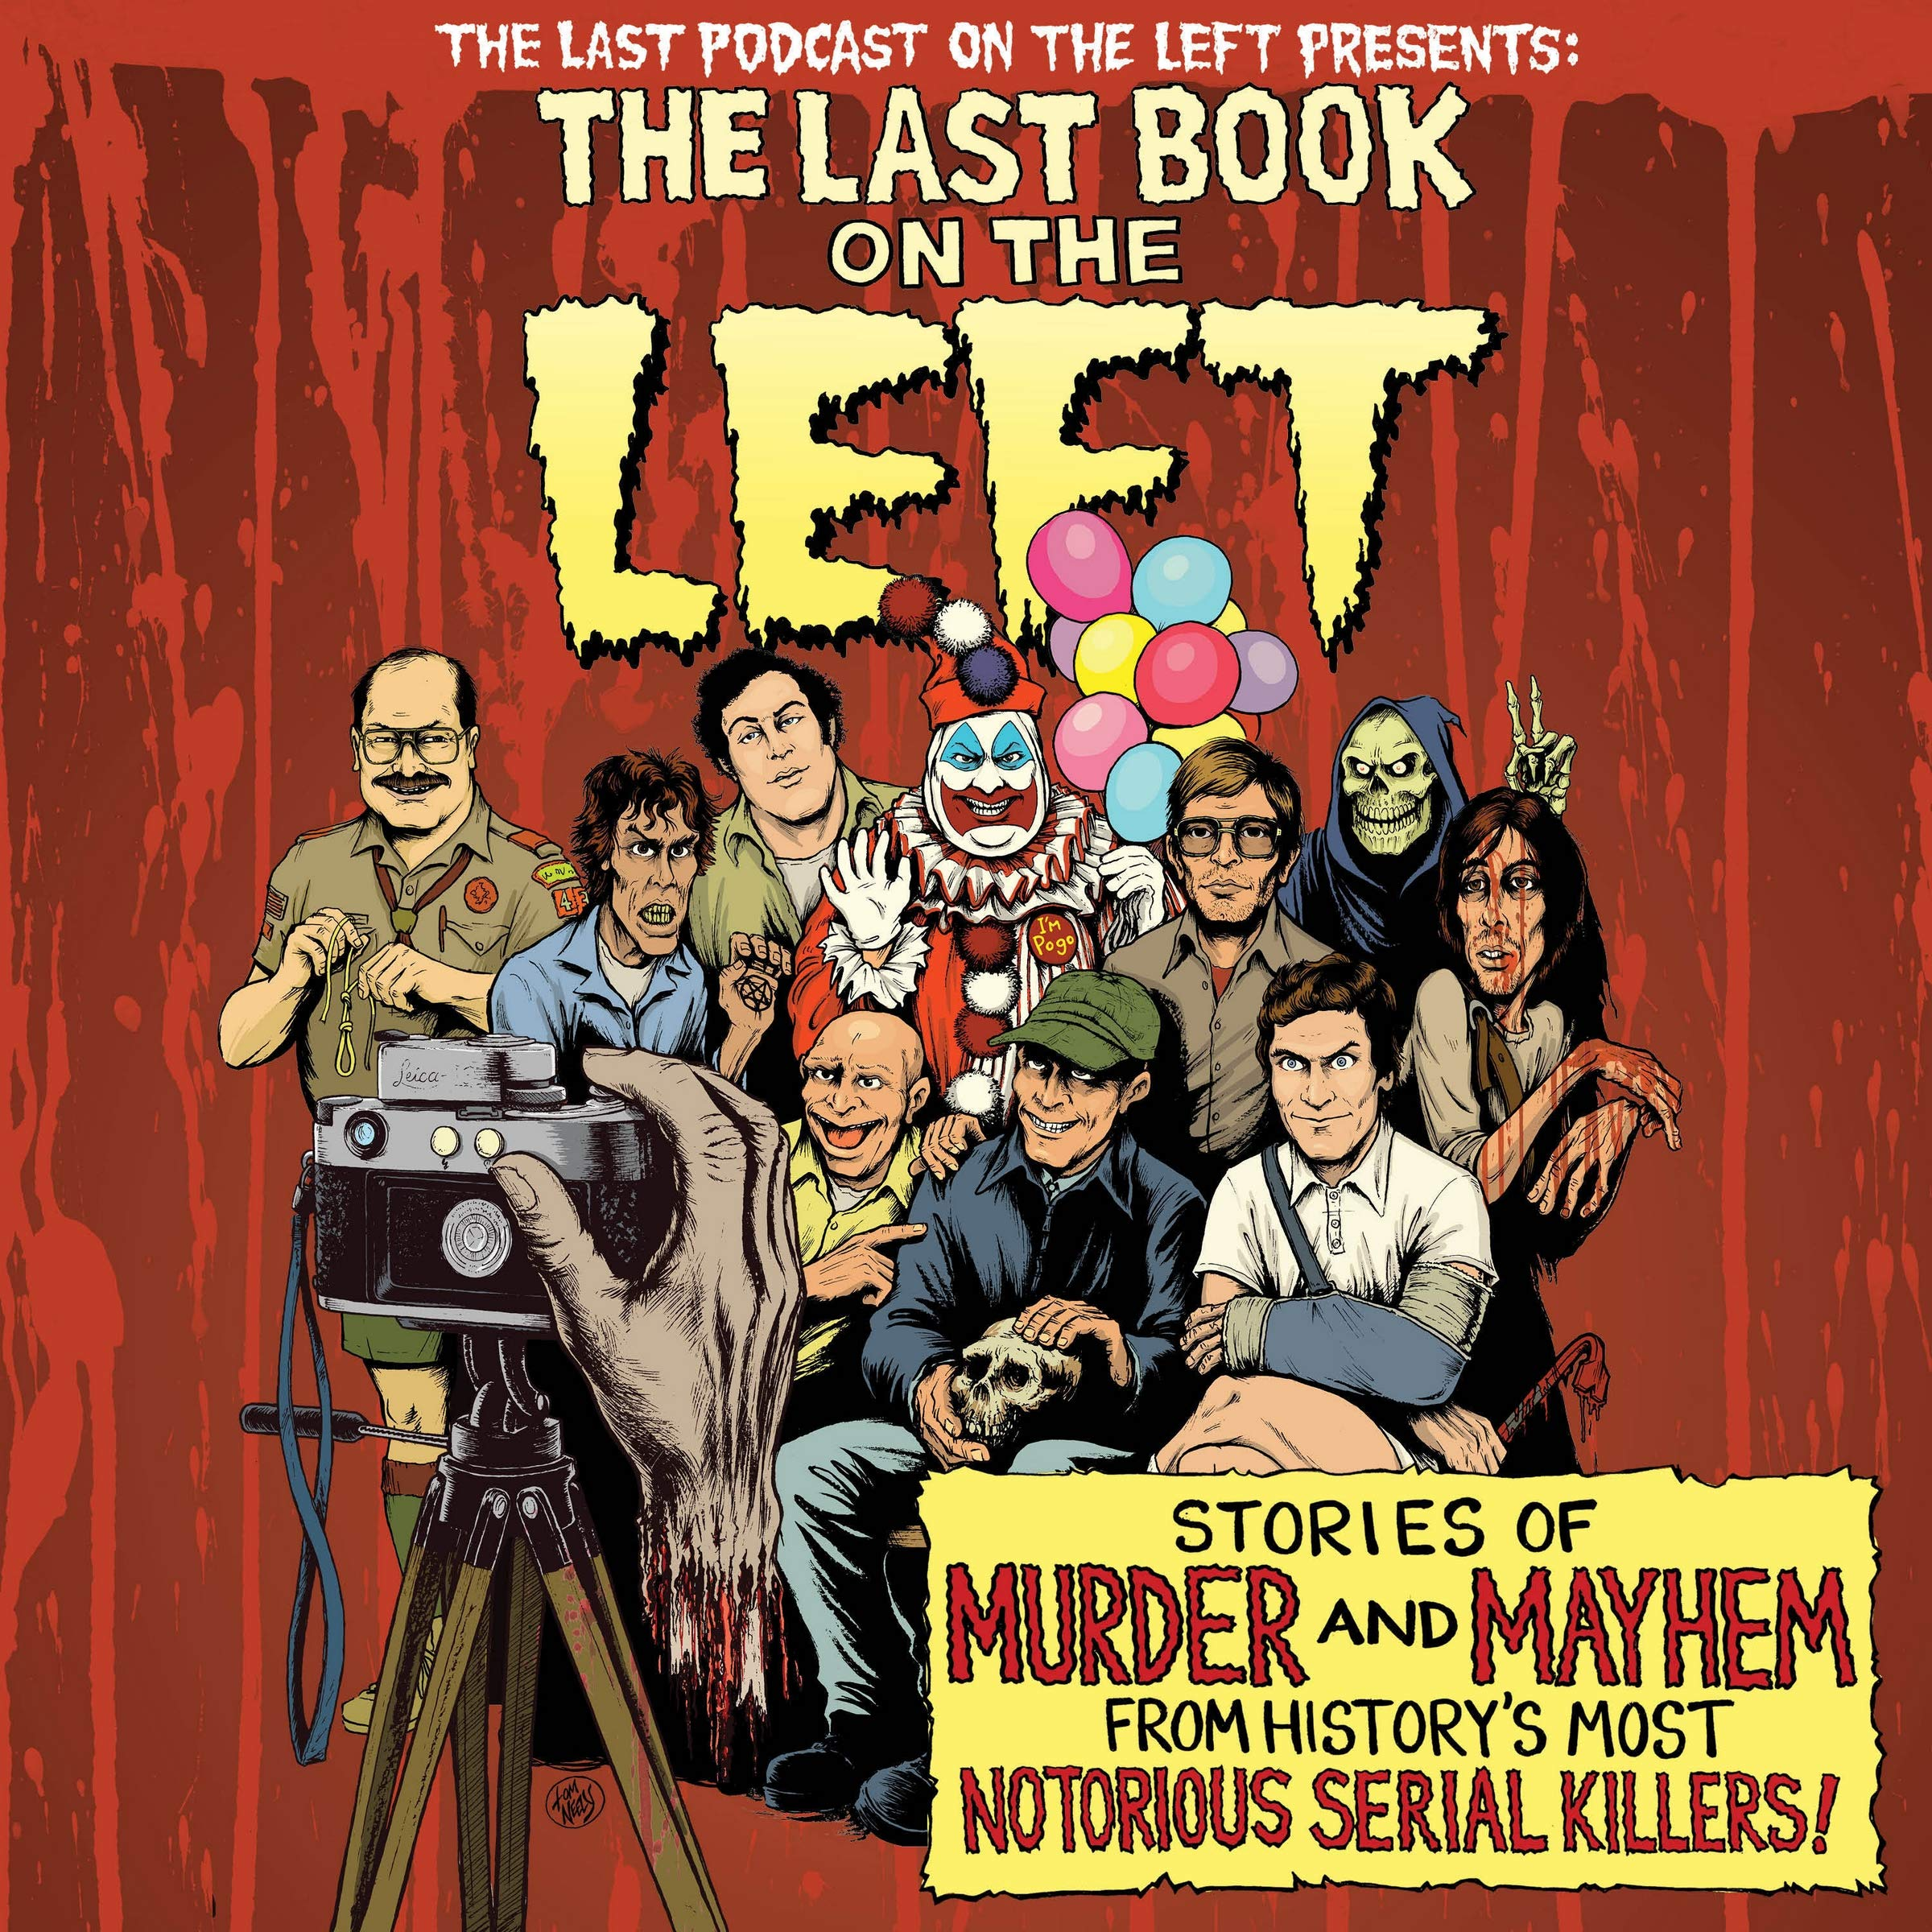 The Last Book On The Left Stories Of Murder And Mayhem From History S Most Notorious Serial Killers Ben Kissel Marcus Parks Henry Zebrowski 9781094064277 Amazon Com Books Since its first show in 2010, the last podcast on the left has barreled headlong into all things horror, as hosts henry zebrowski, ben kissel, and marcus parks cover subjects spanning jeffrey dahmer, werewolves, jonestown, and. the last book on the left stories of